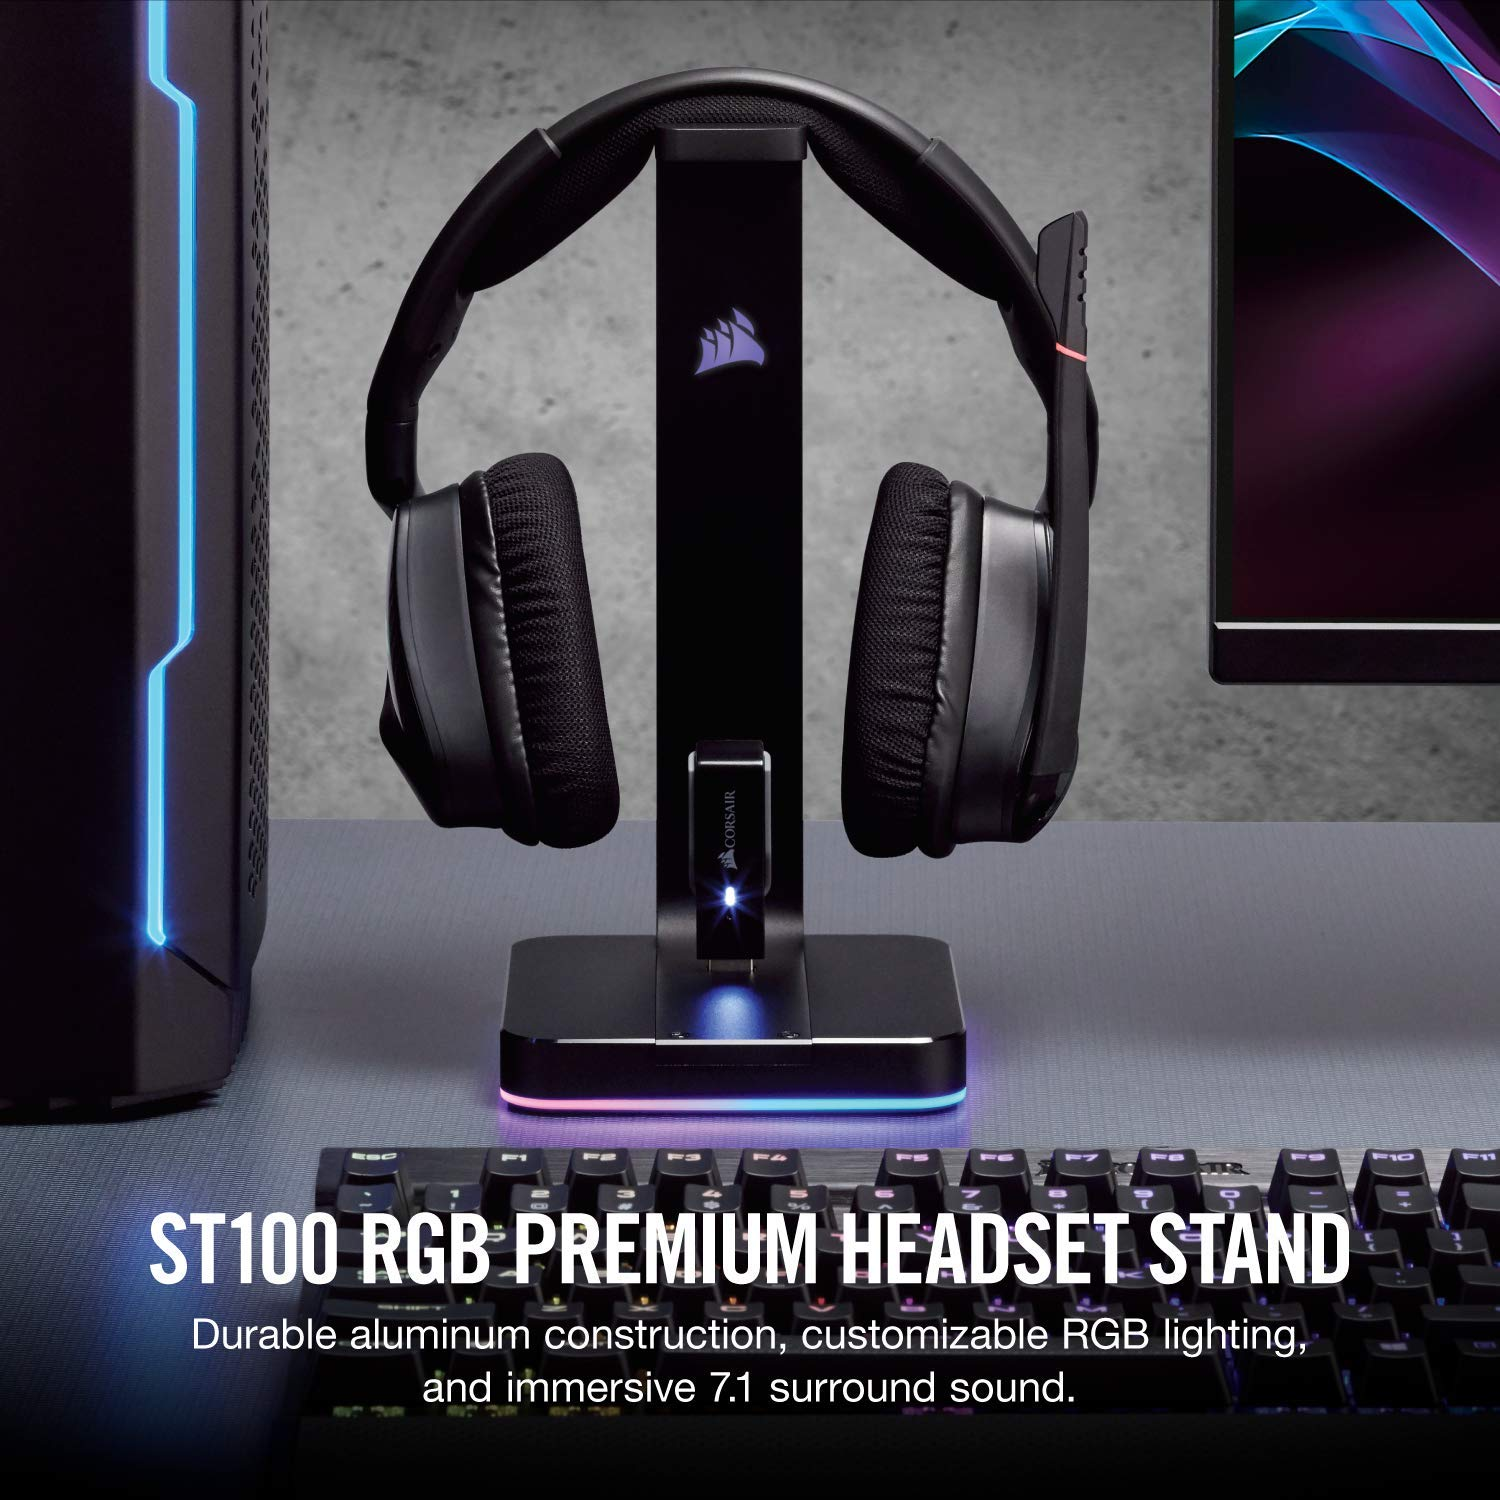 CORSAIR ST100 RGB Premium Headset Stand with 7 1 Surround Sound - 3 5mm and  2xUSB 3 0